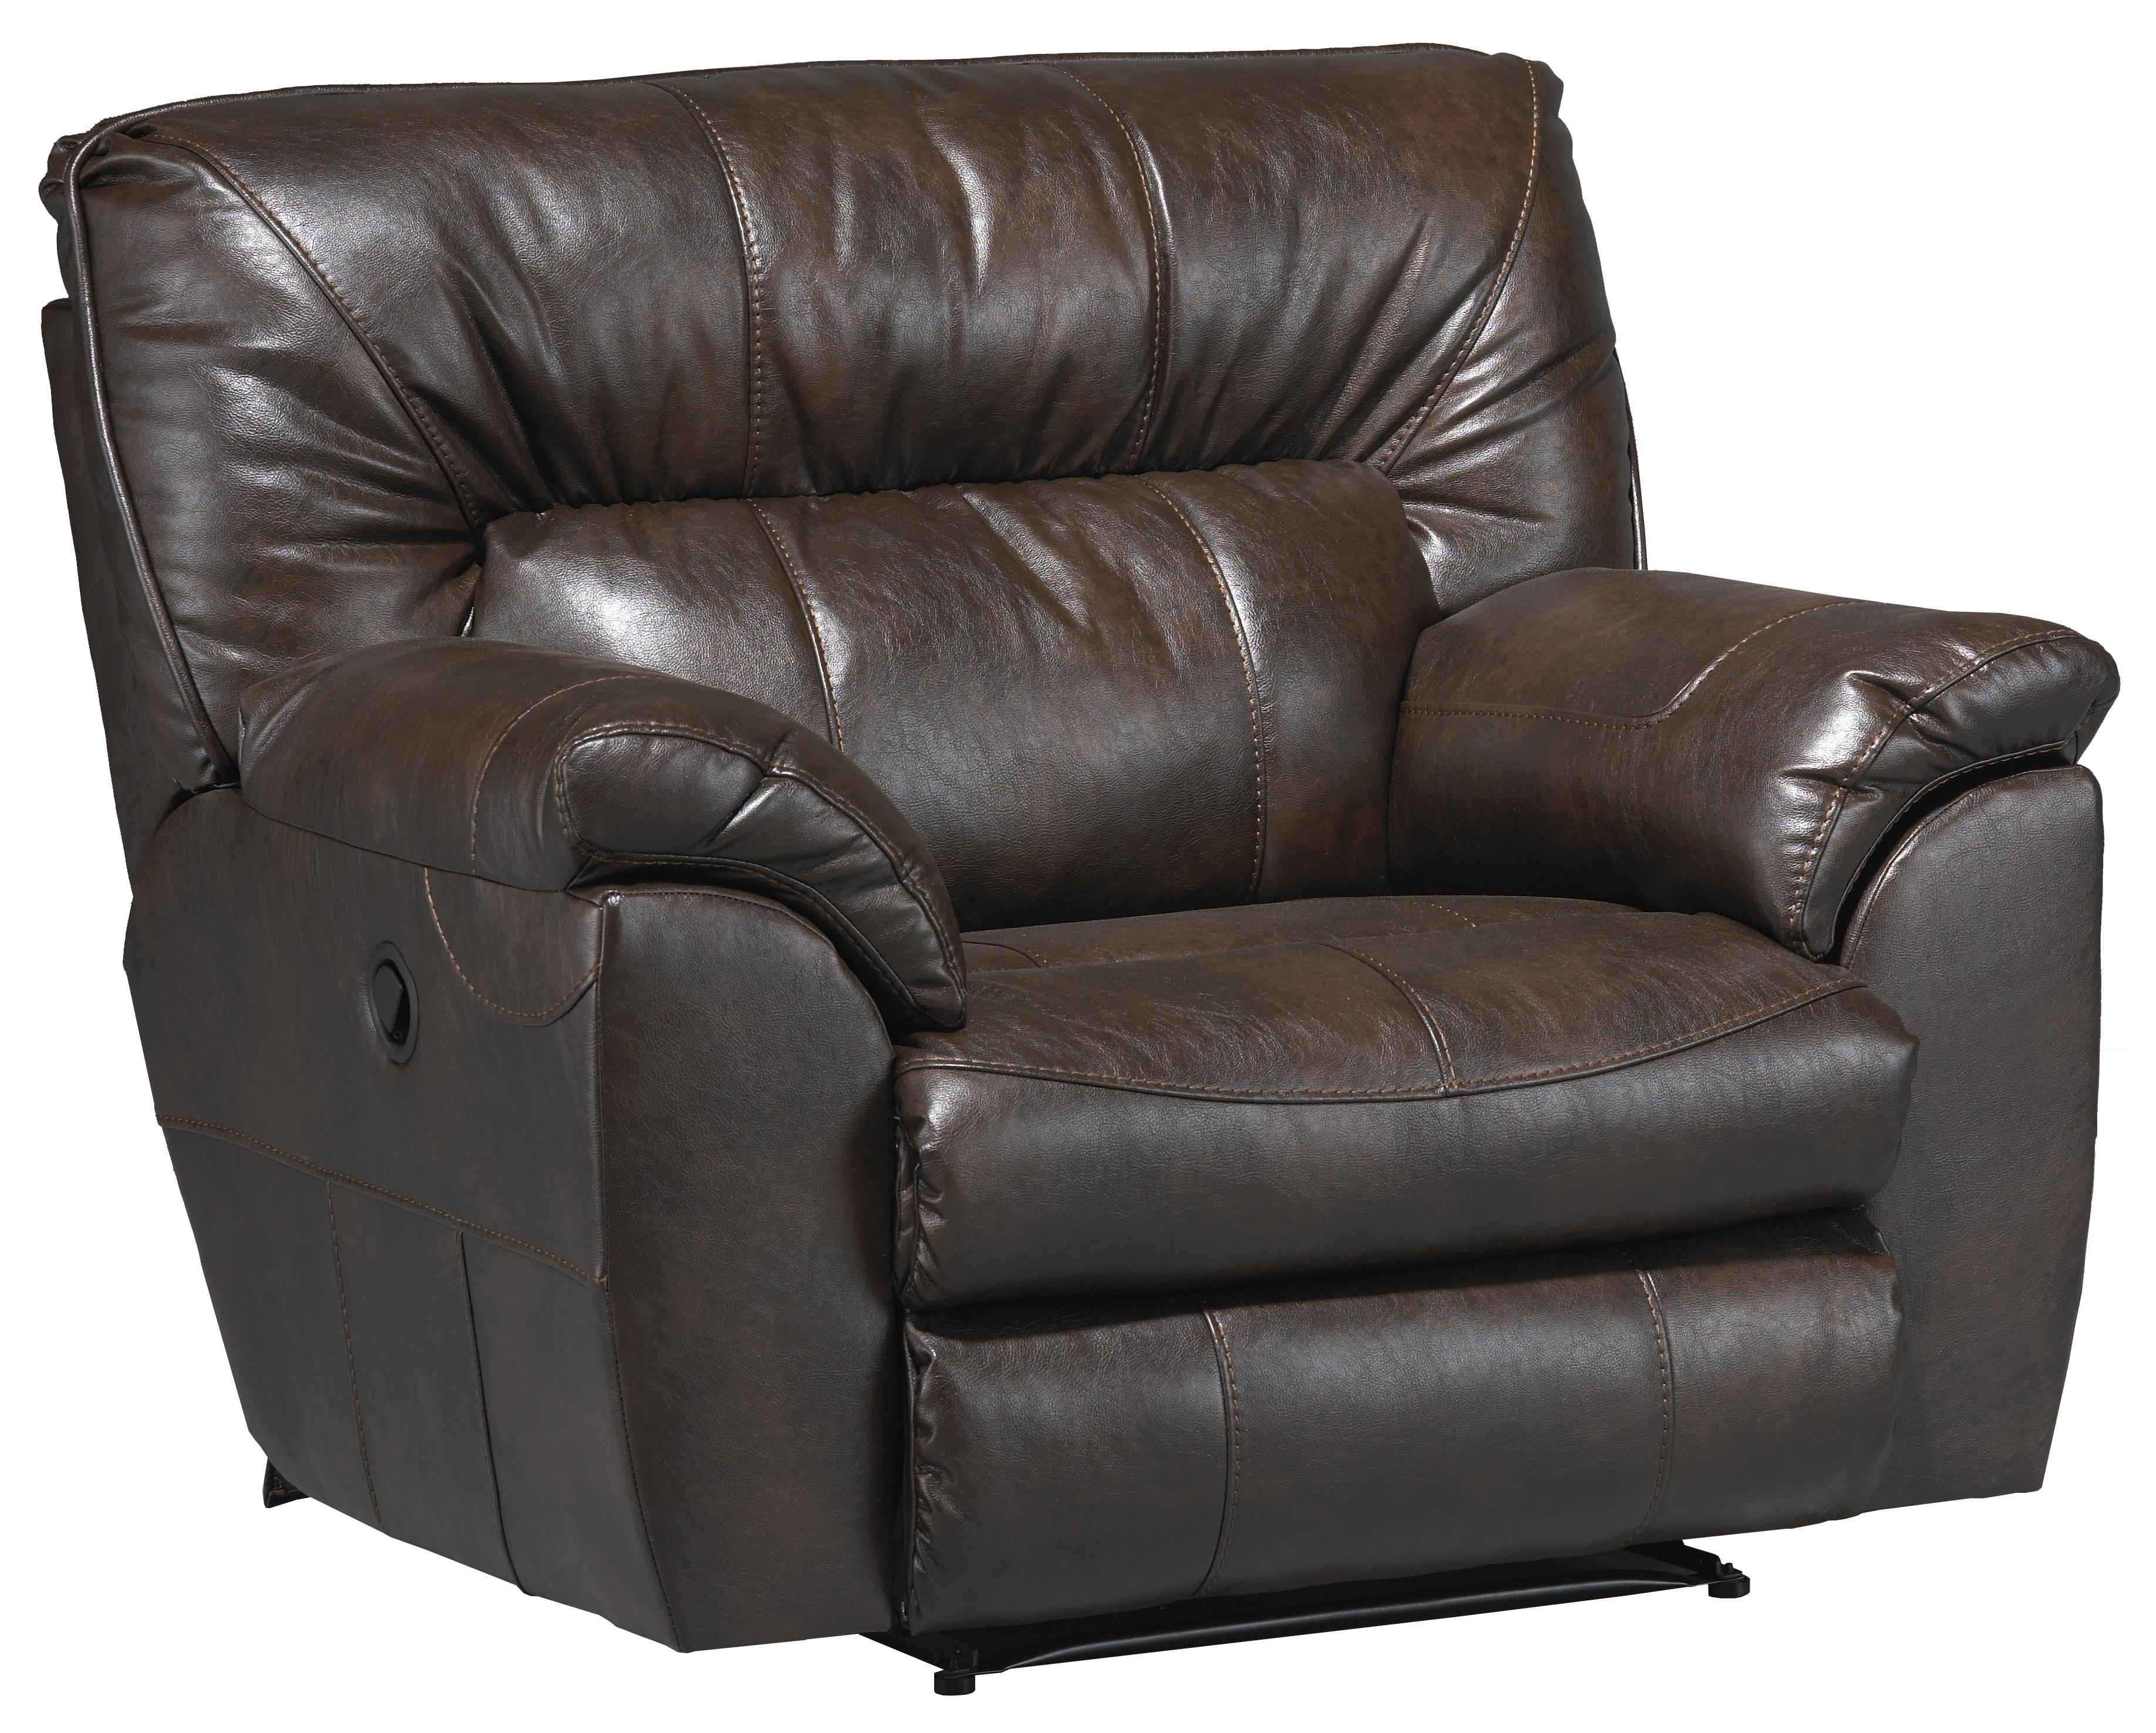 Catnapper Chair Catnapper Nolan Power Extra Wide Cuddler Recliner With